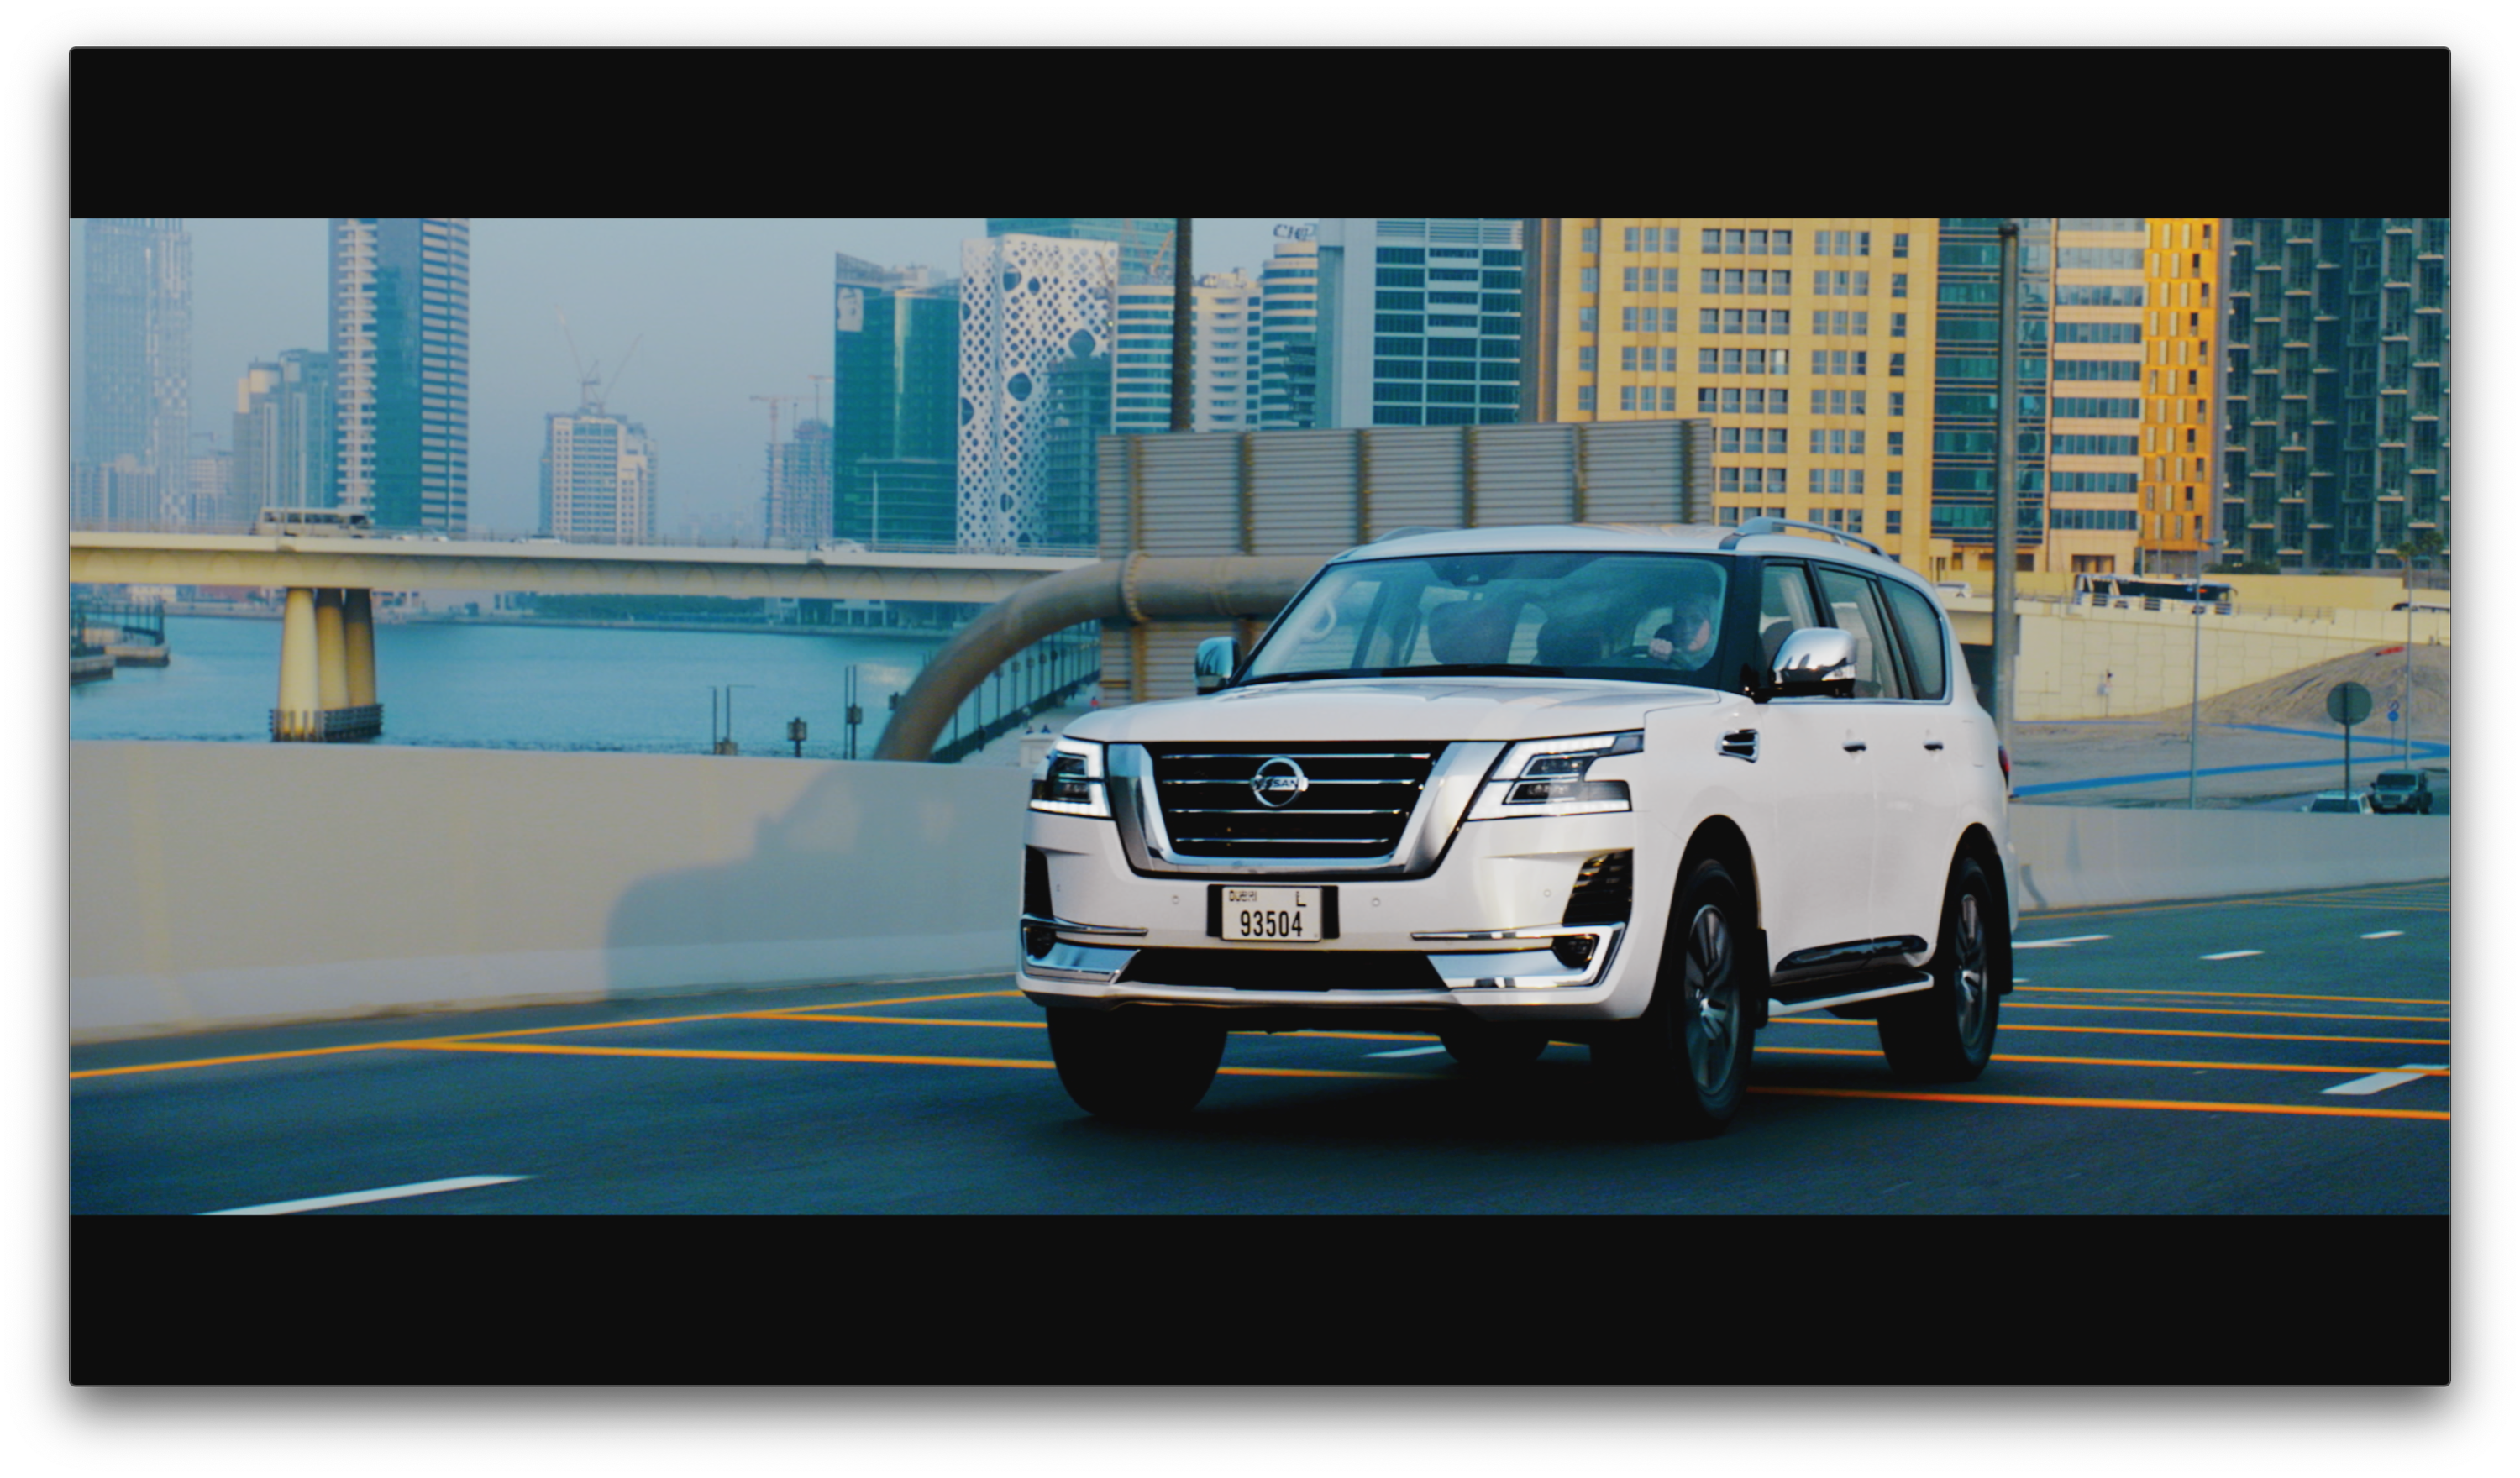 Agency: What If Creative Studios (Nissan Dubai)